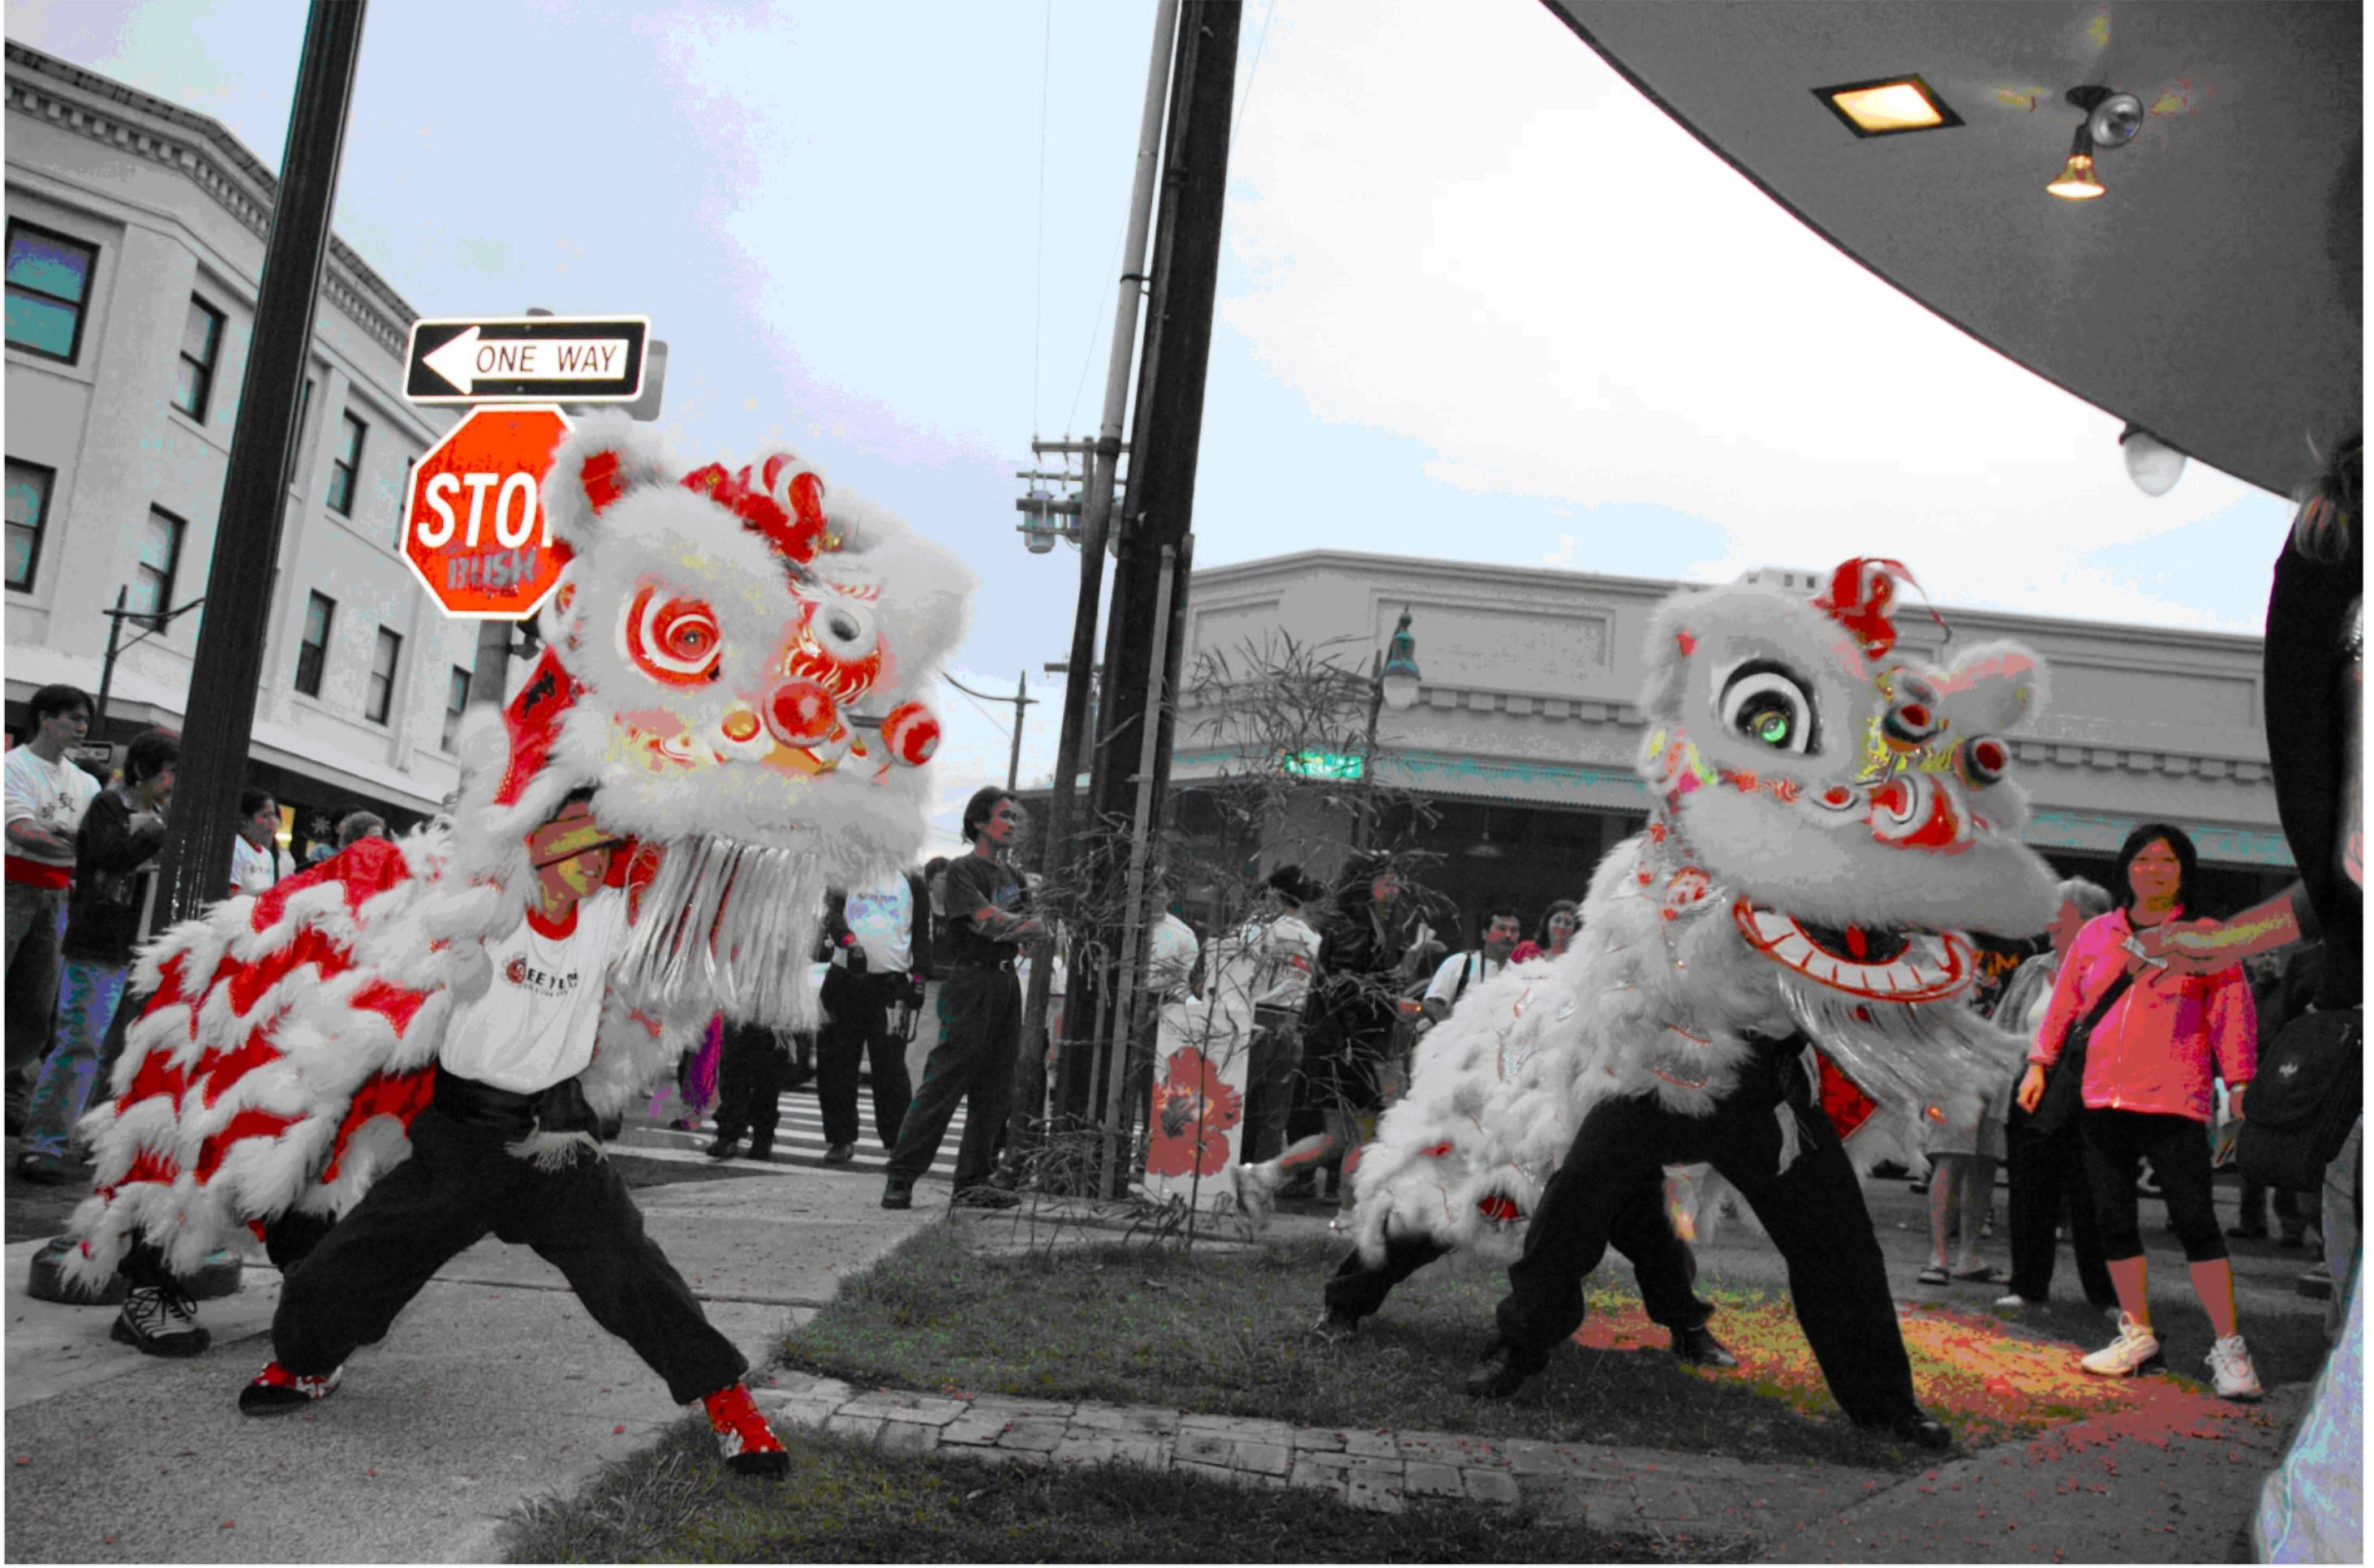 A dragon dance in the Chinatown Special Historic District in Honolulu, Hawaii